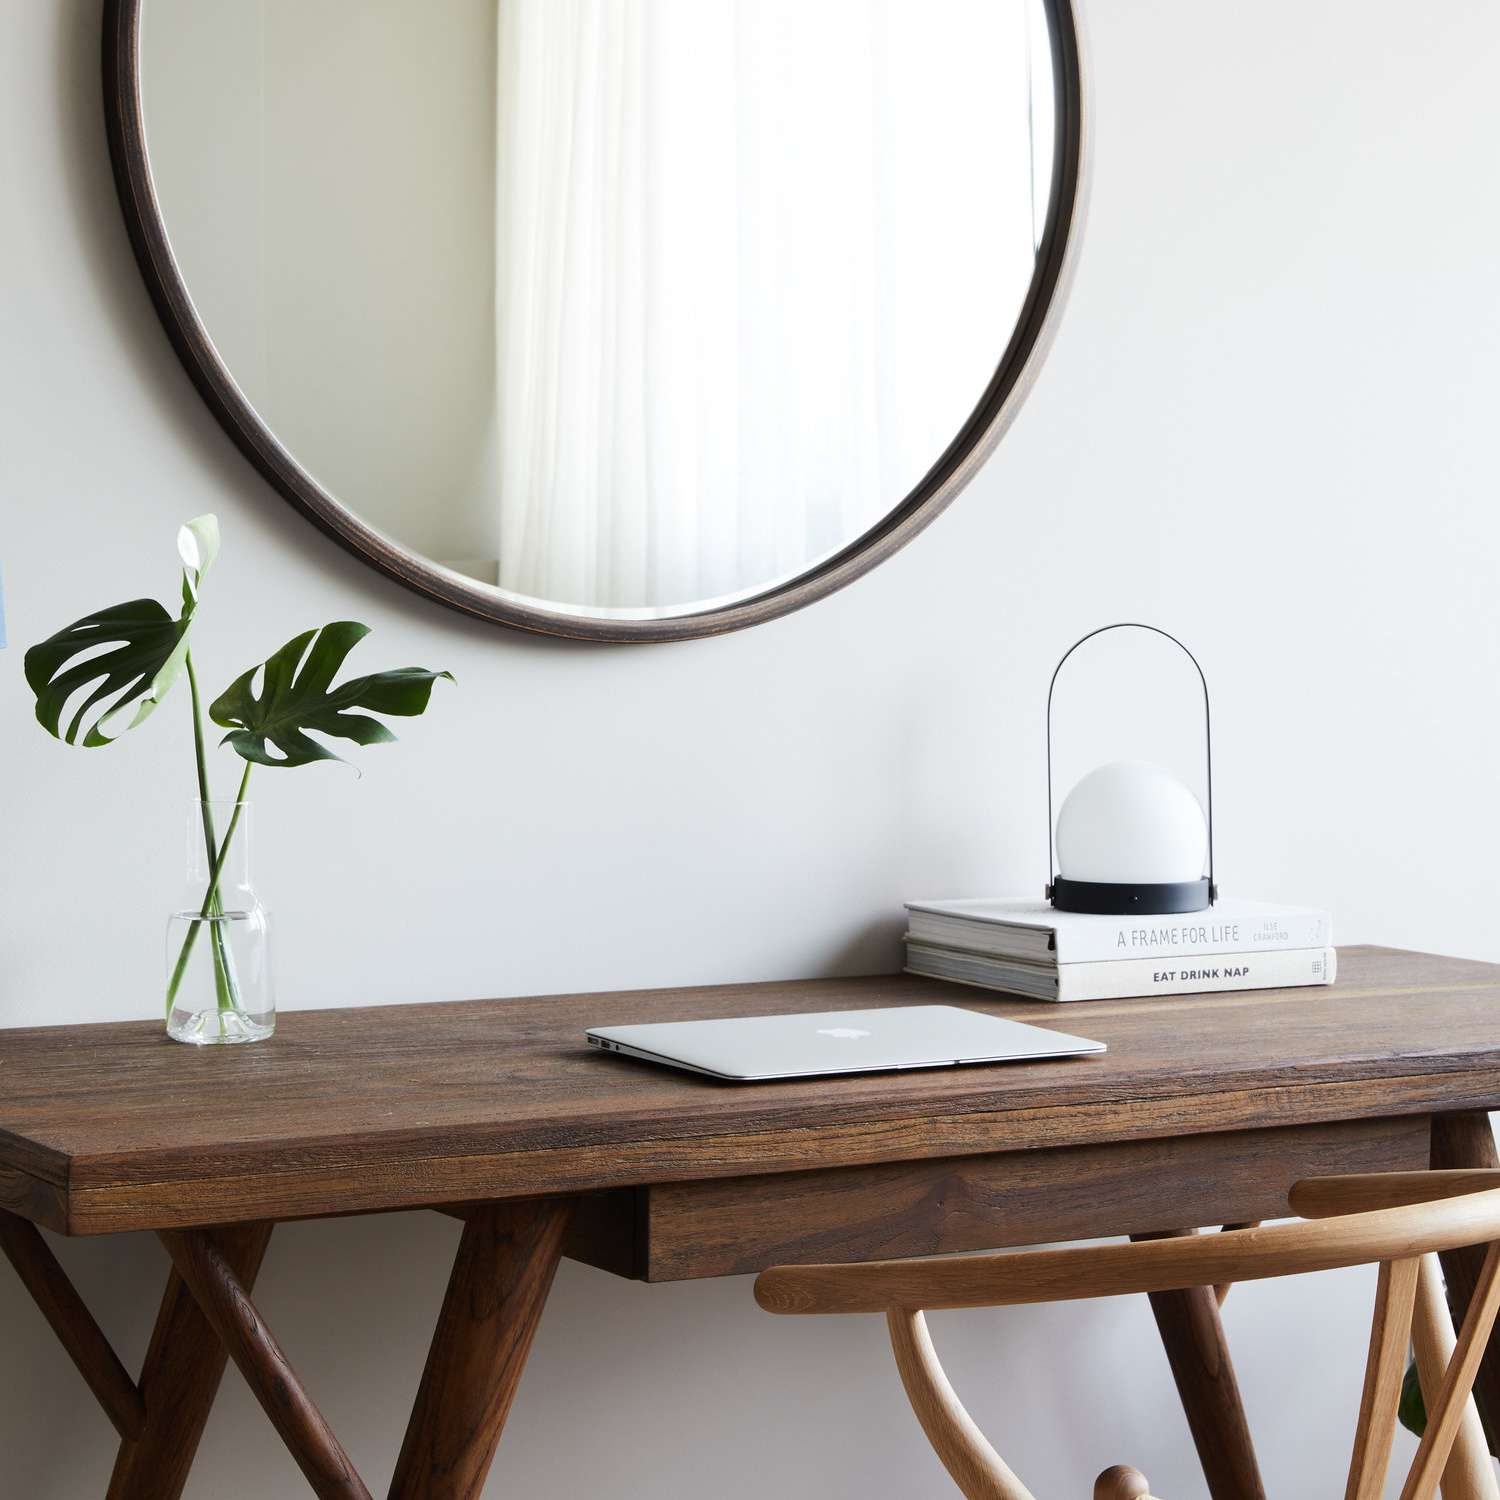 A midcentury modern desk decorated with minimal decor